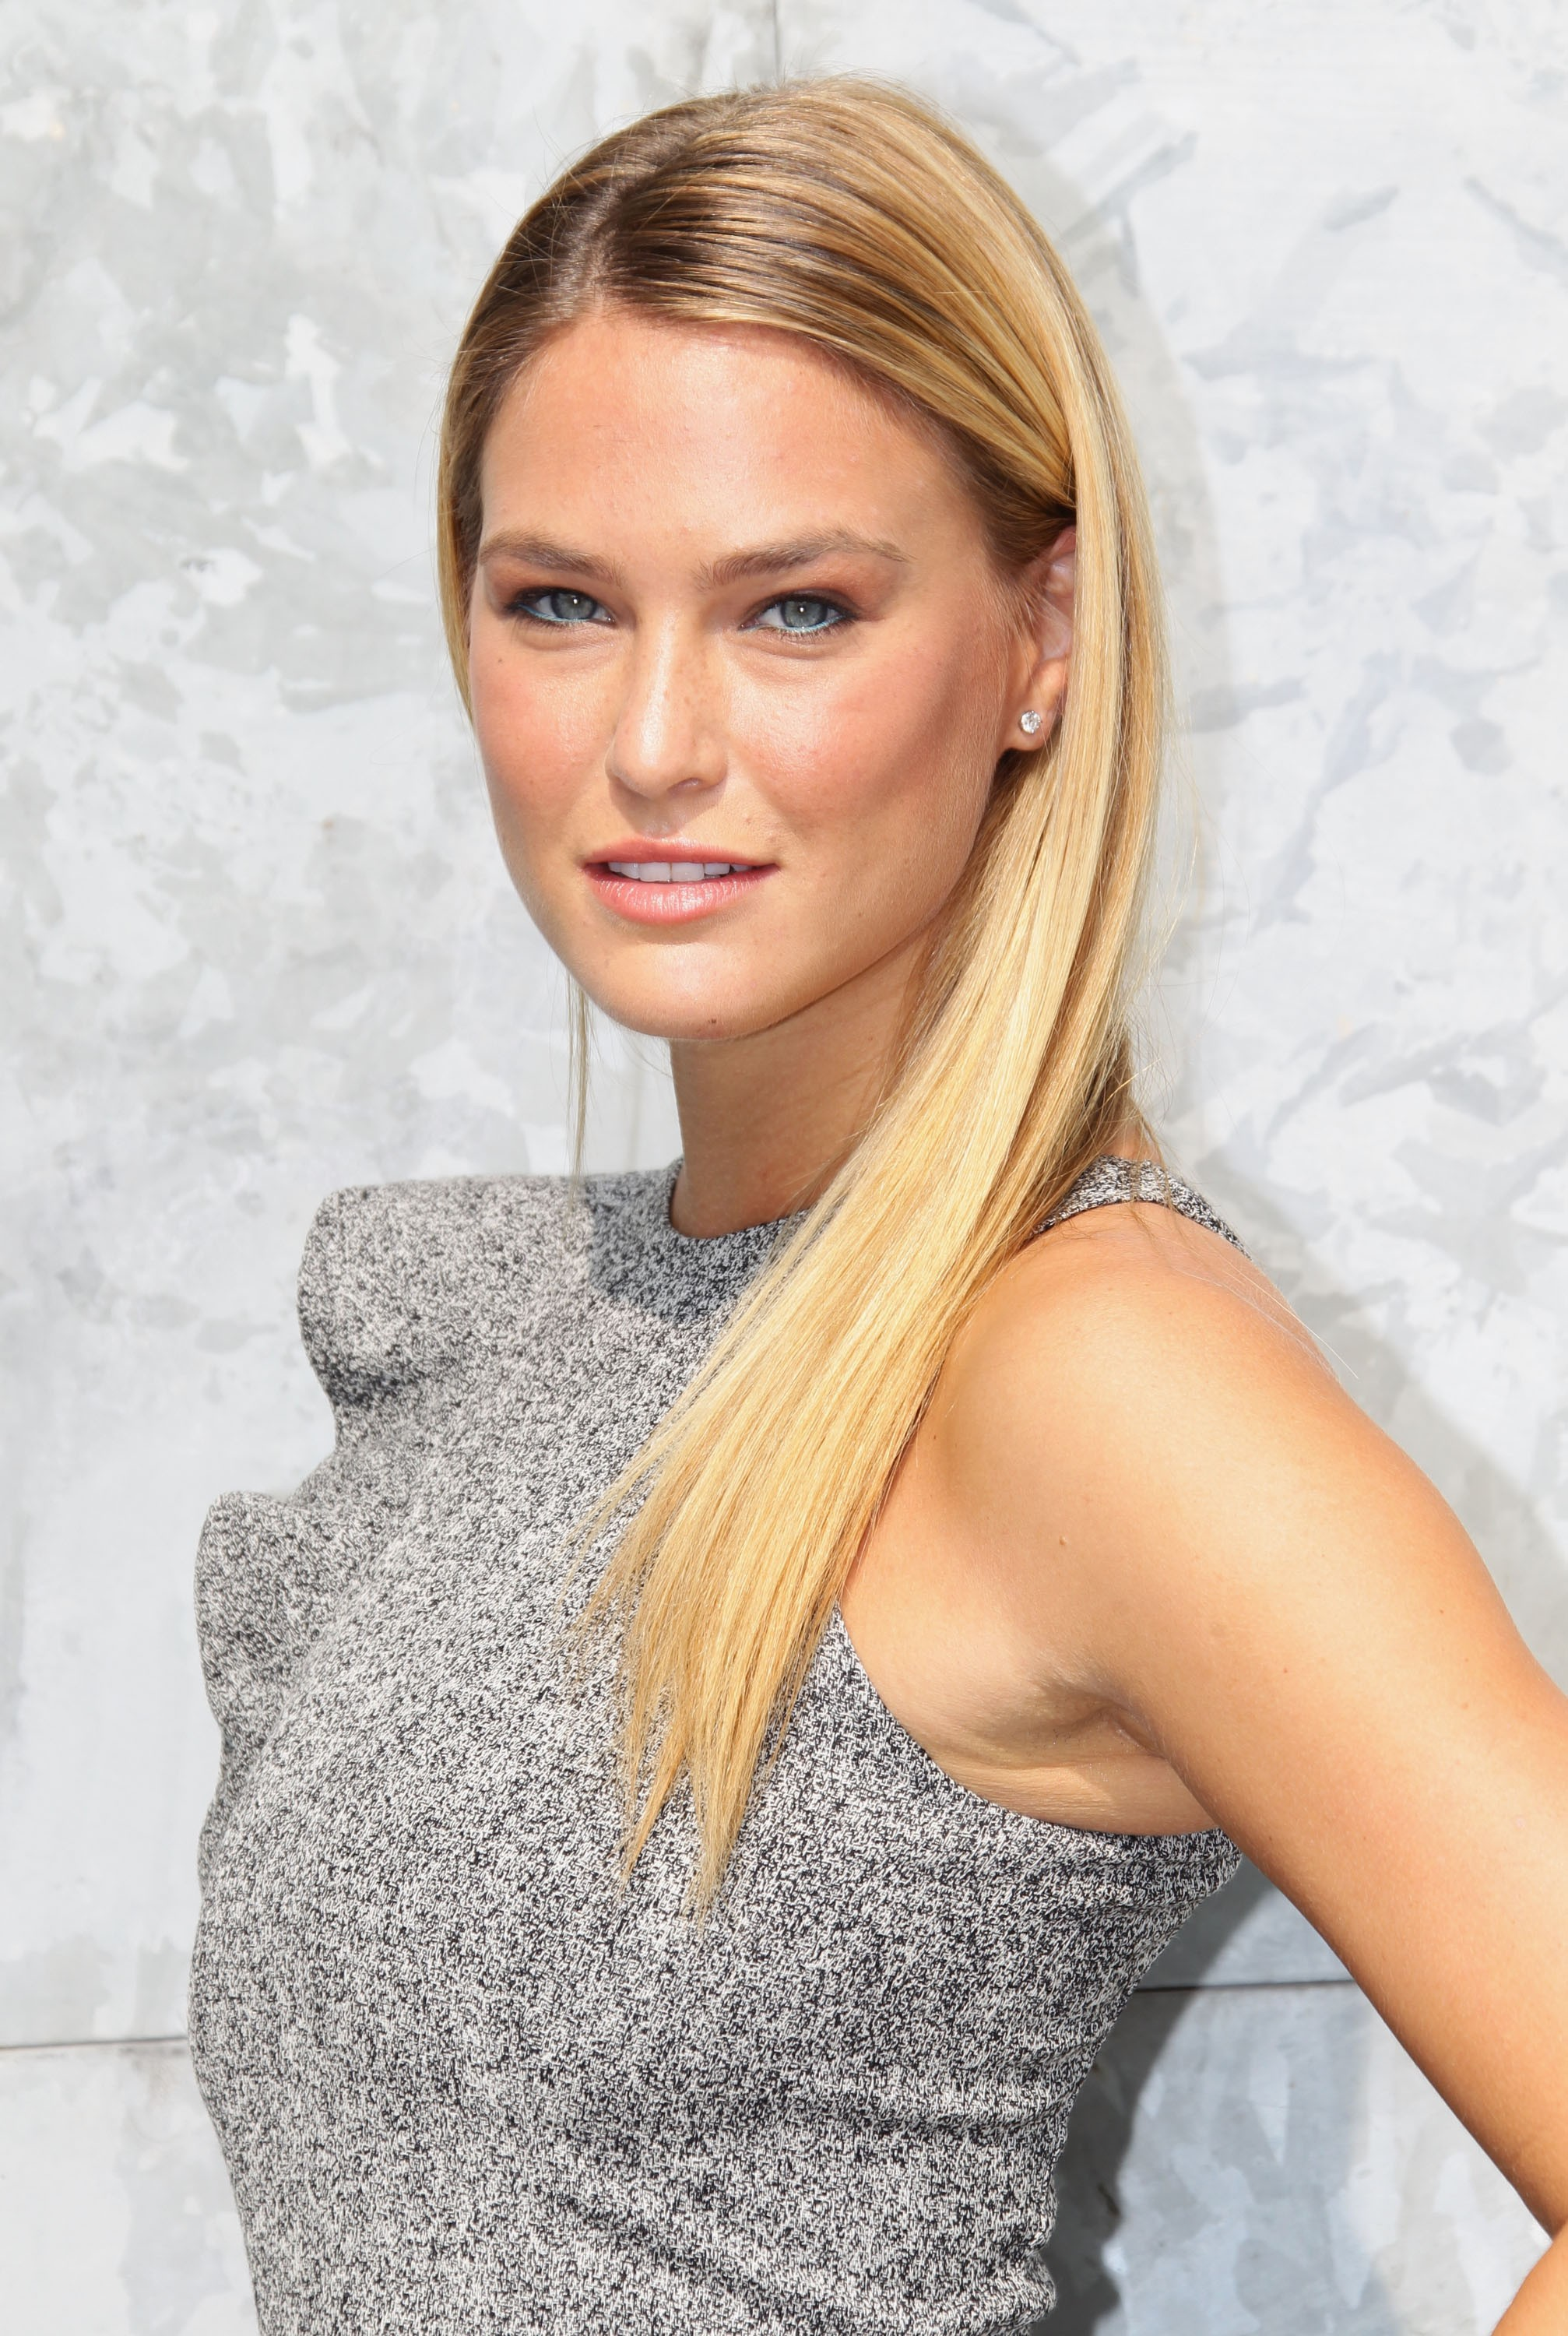 Bar Refaeli Iphone Sexy Wallpapers